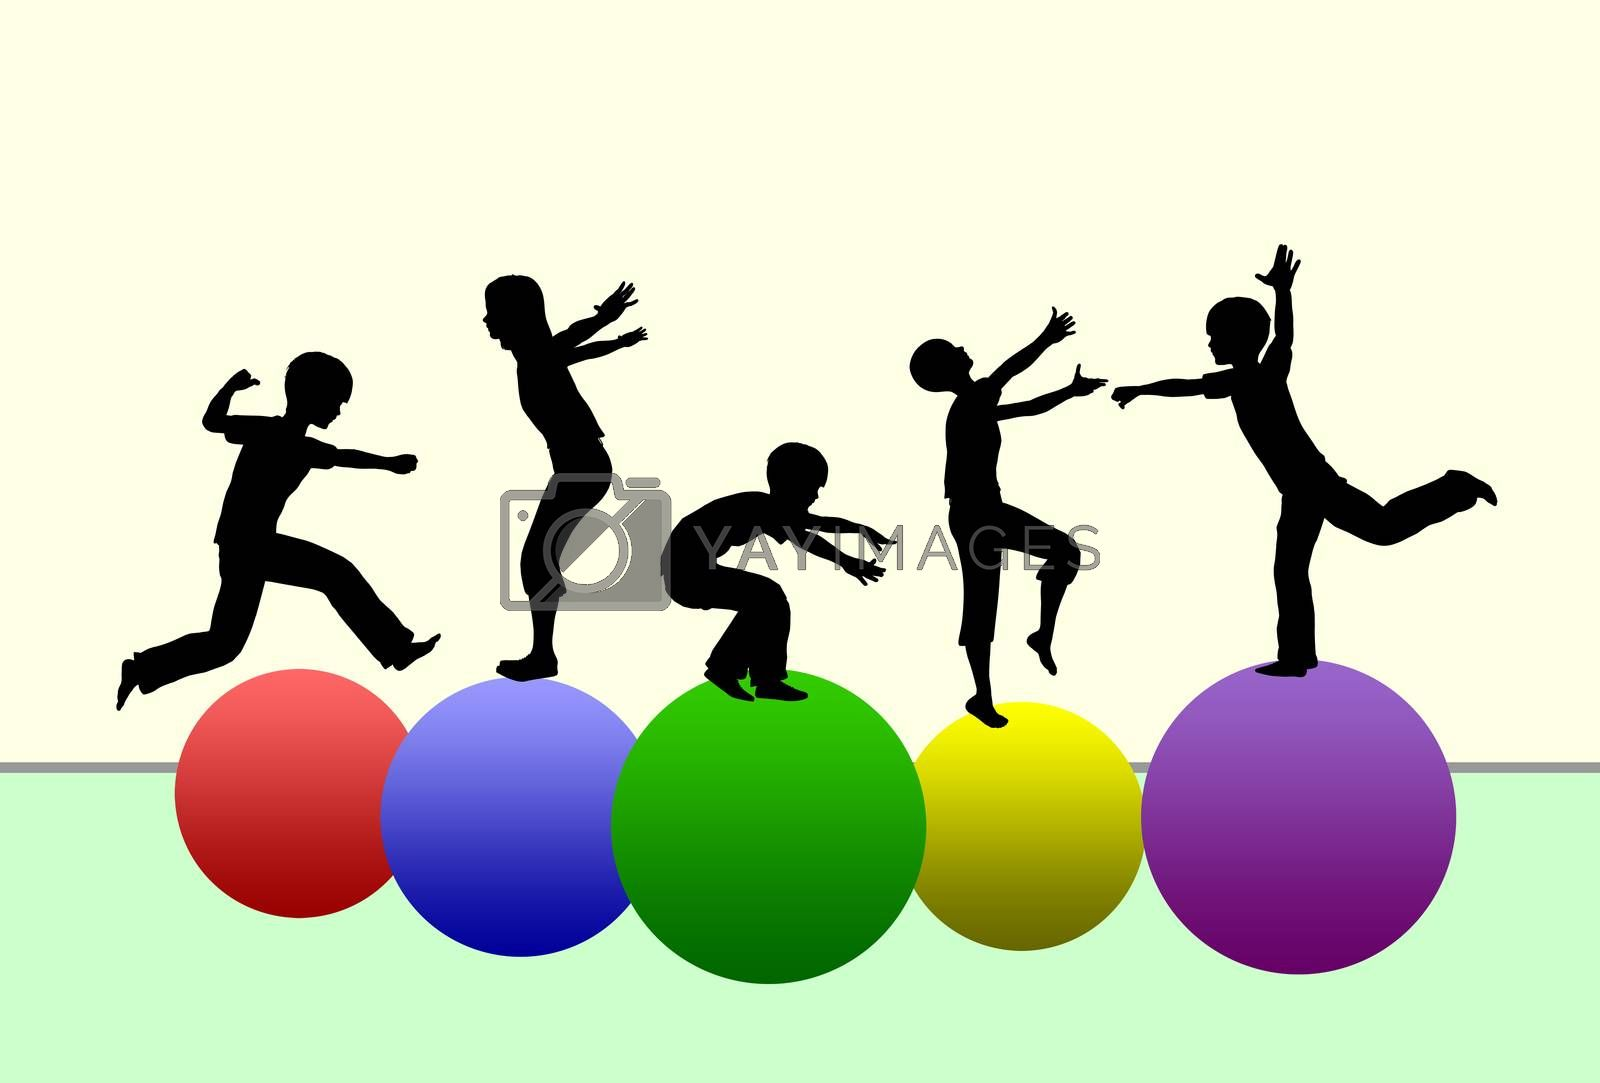 Concept of promoting physical development in early childhood by gymnastics and sports